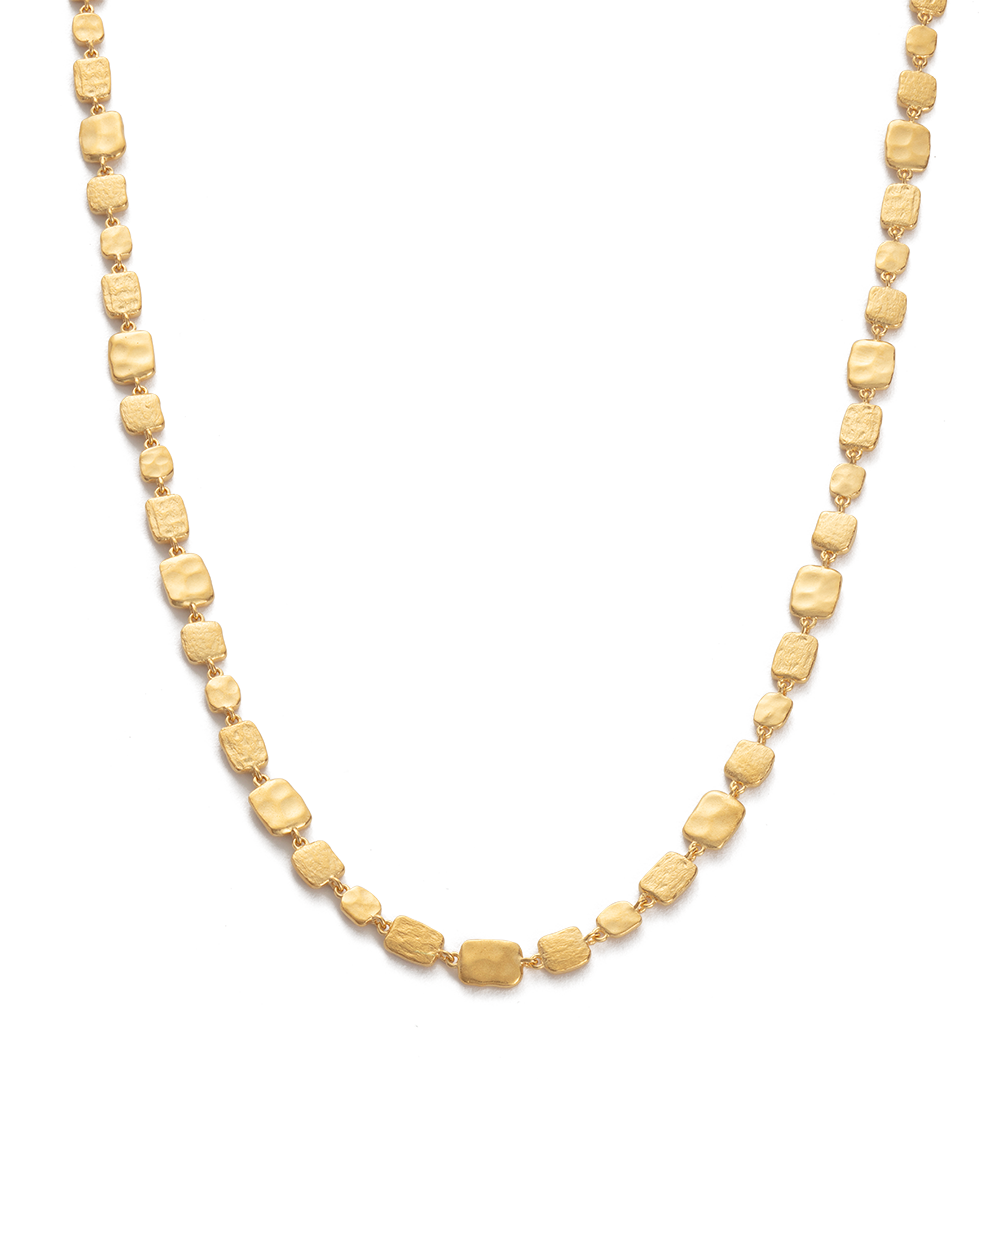 CASCADE NECKLACE (18K-GOLD-PLATED) - FRONT